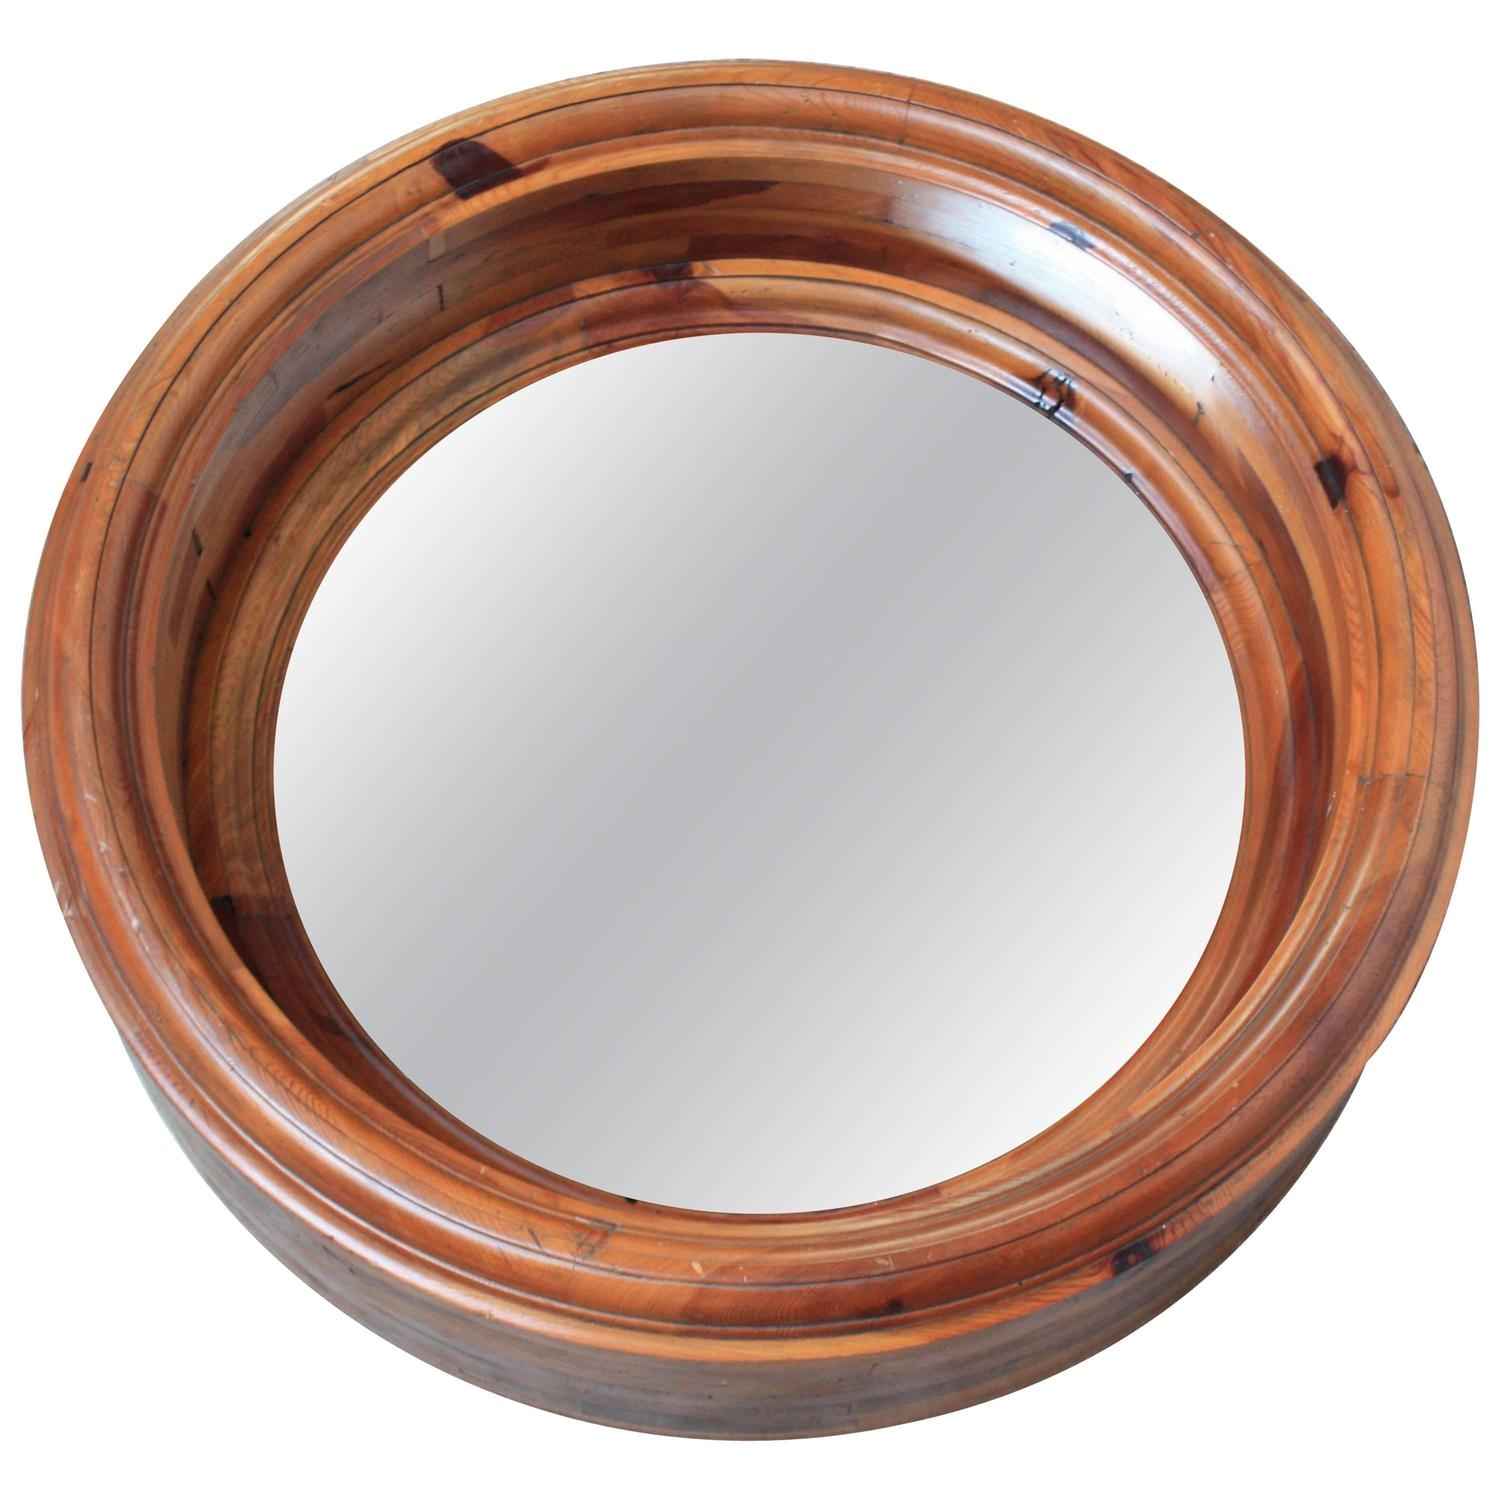 Large Wooden Porthole Mirror Ralph Lauren For Sale At 1stdibs Within Porthole Style Mirror (View 11 of 15)